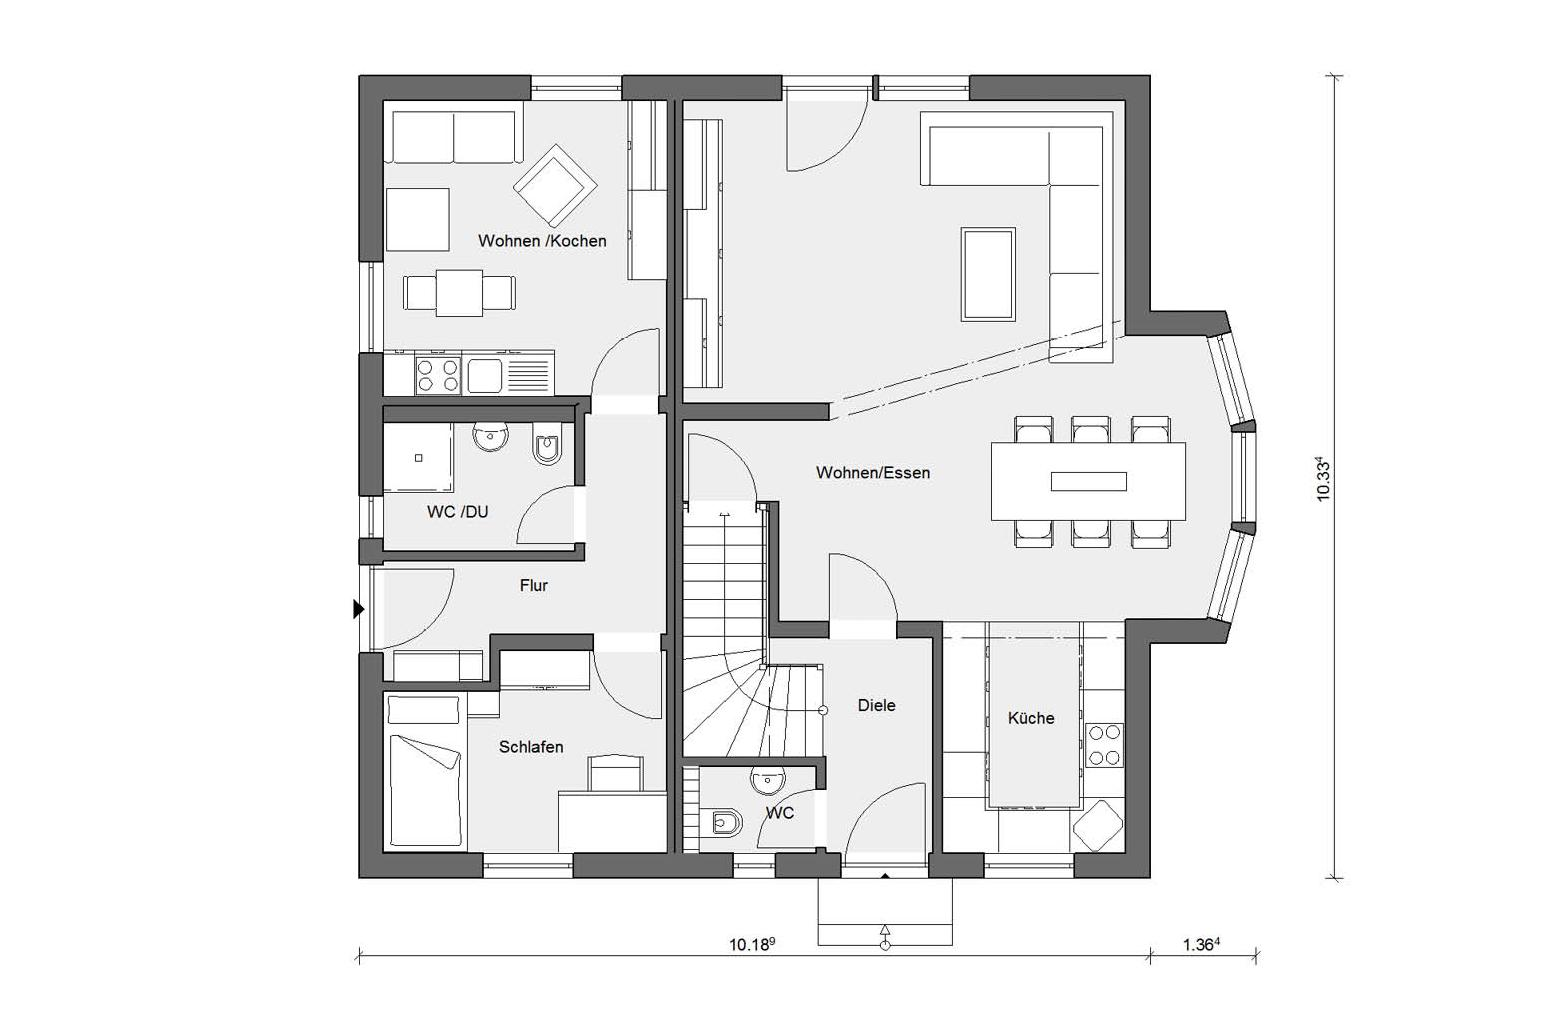 Floor plan ground floor M-15 178.1 Prefabricated house with granny flat